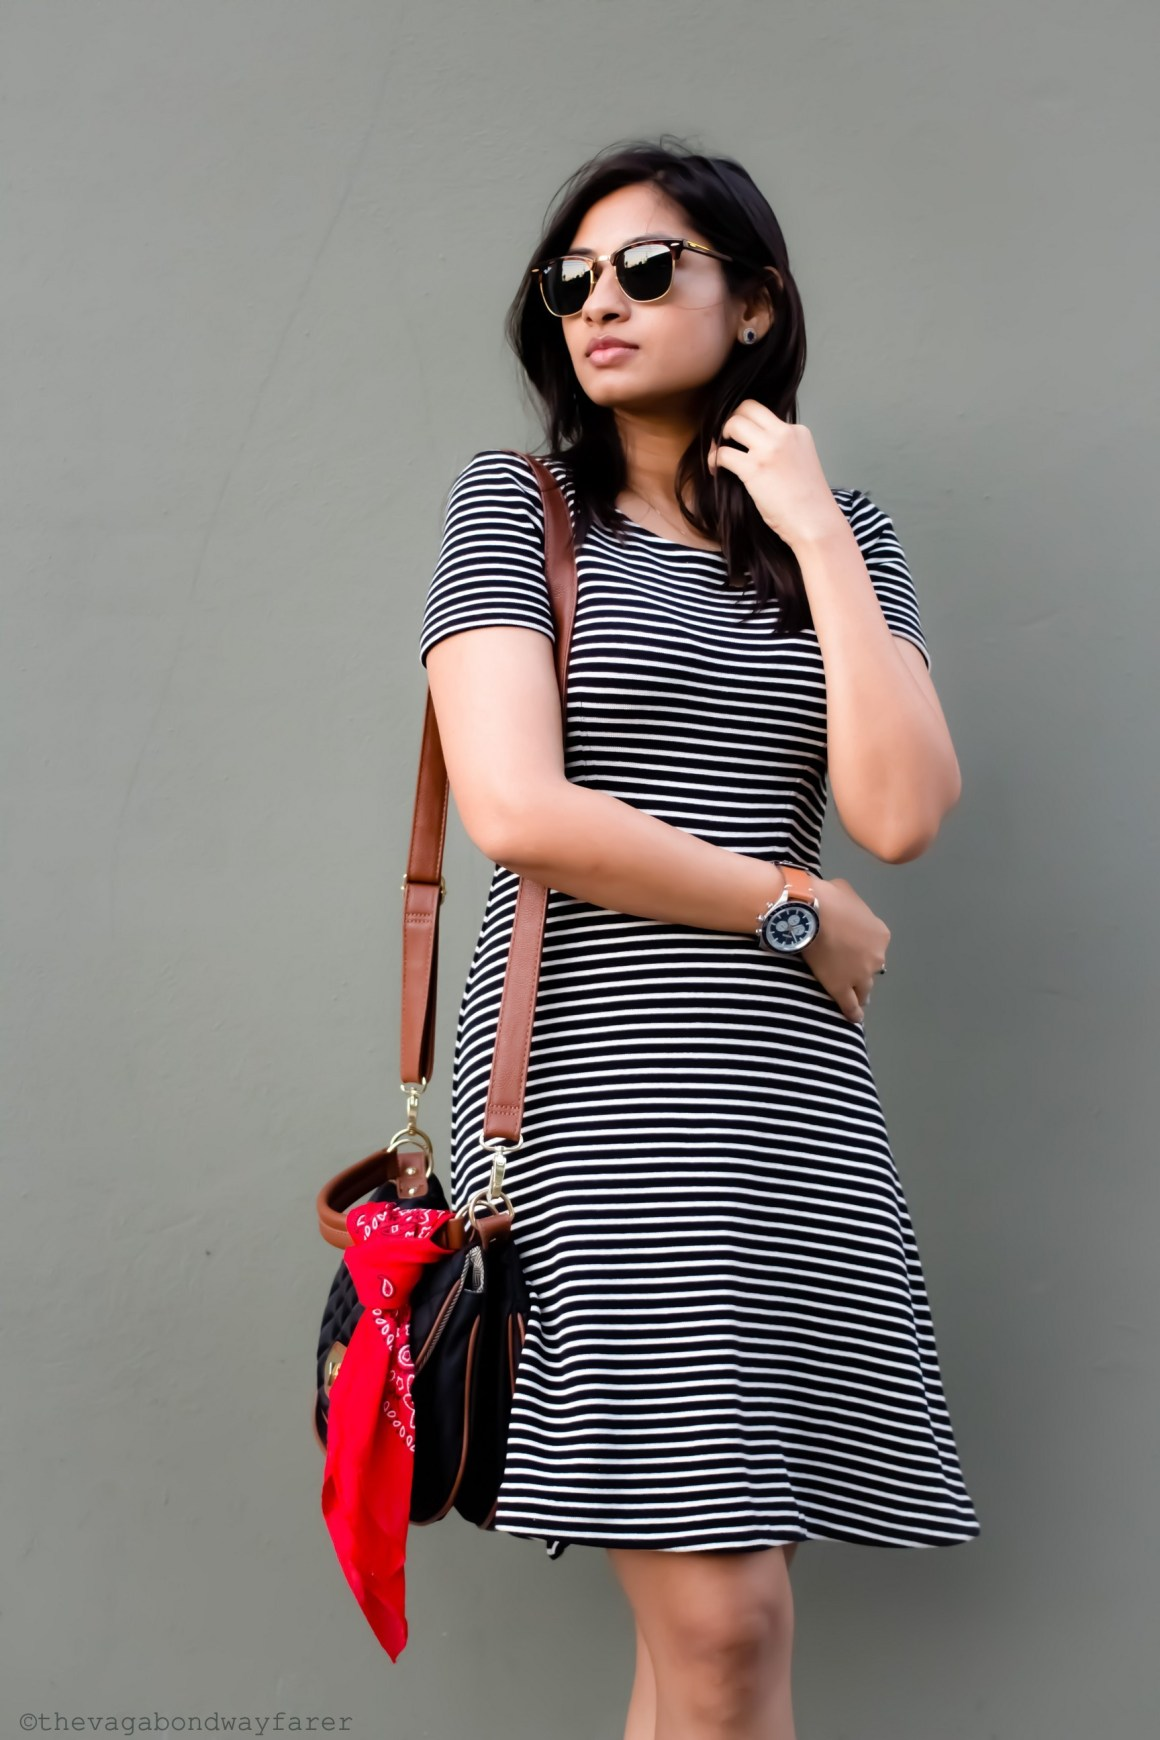 Parisian Stripes - The Vagabond Wayfarer